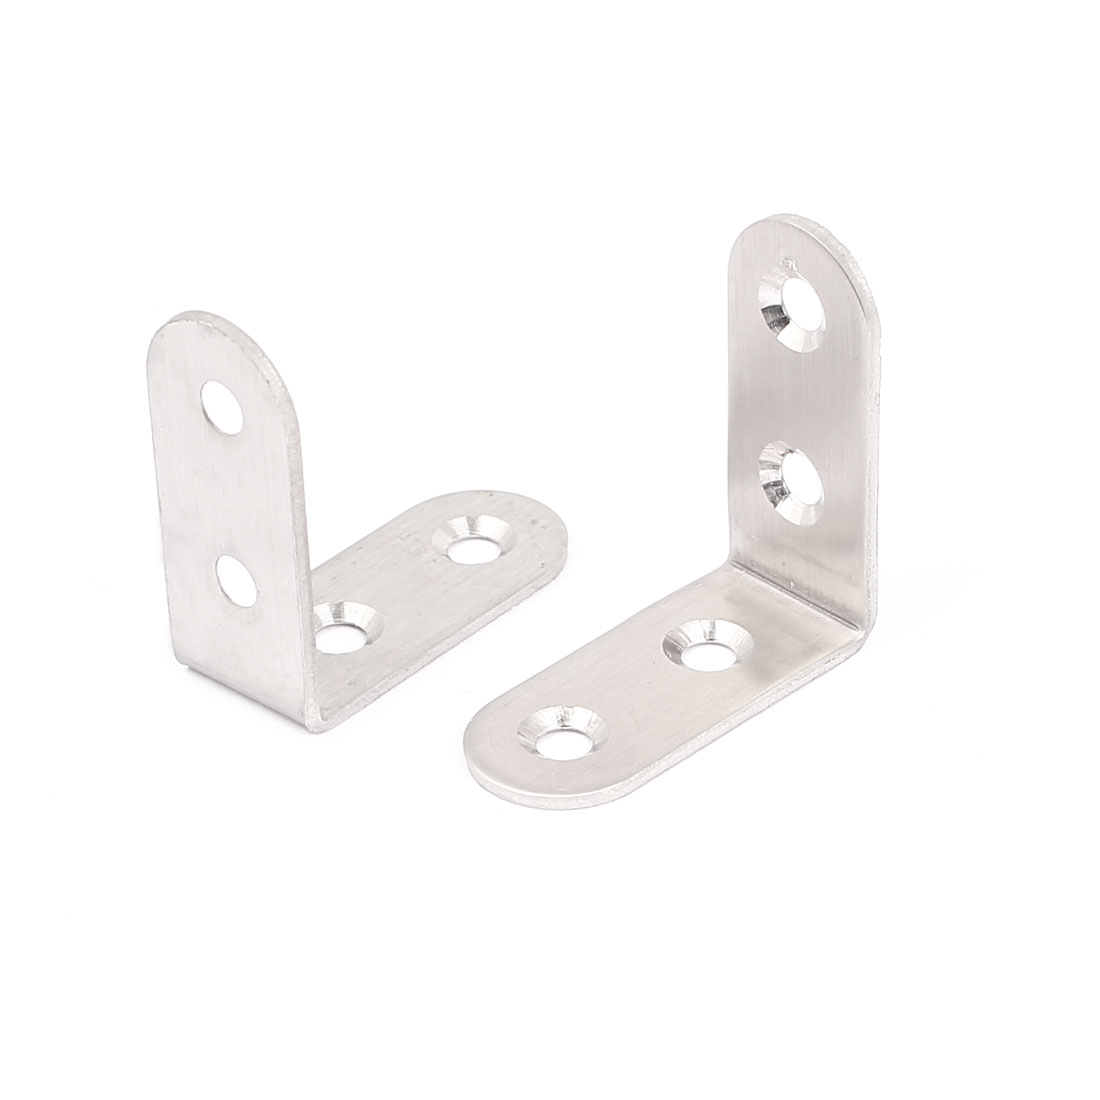 40mmx40mm L Shape Stainless Steel Shelf Wall Corner Brace Right Angle Bracket 2pcs